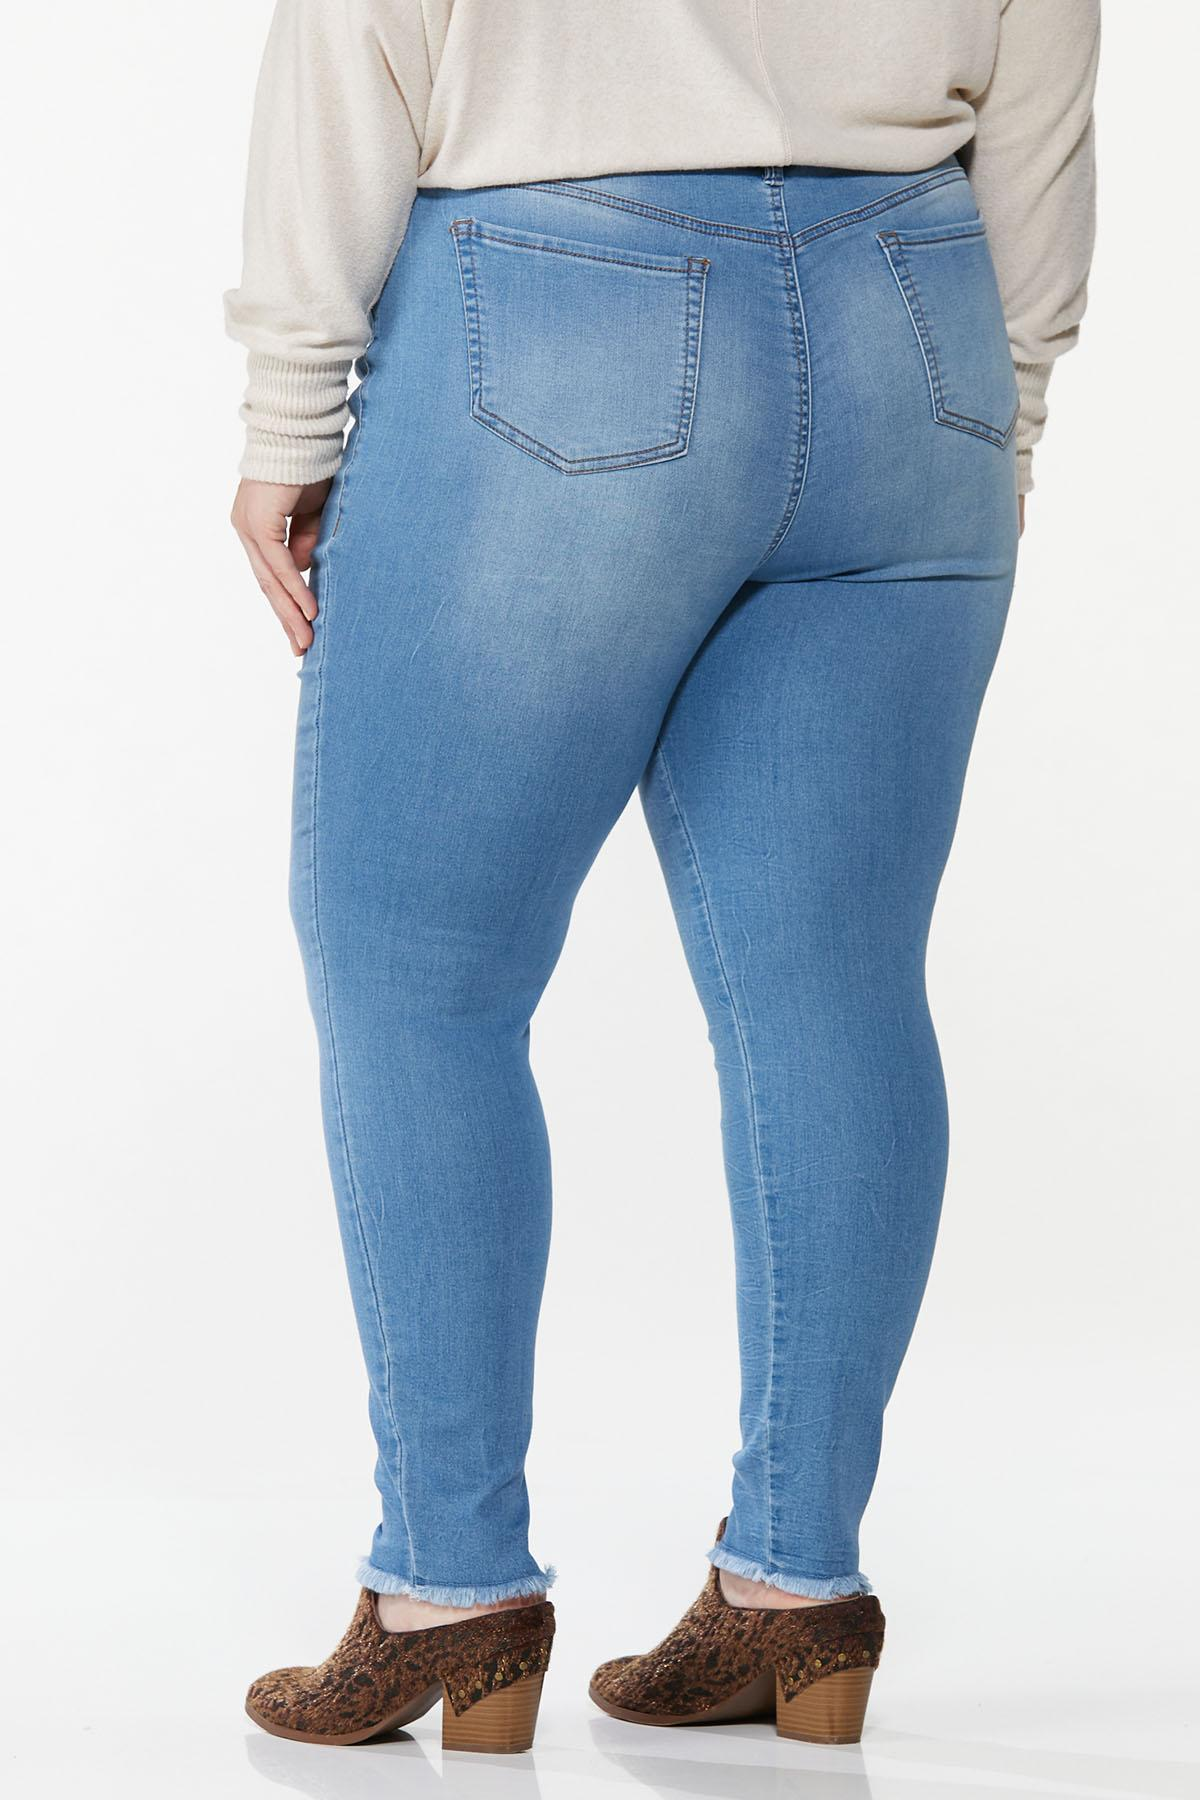 Plus Size Frayed Button Fly Jeans (Item #44668293)